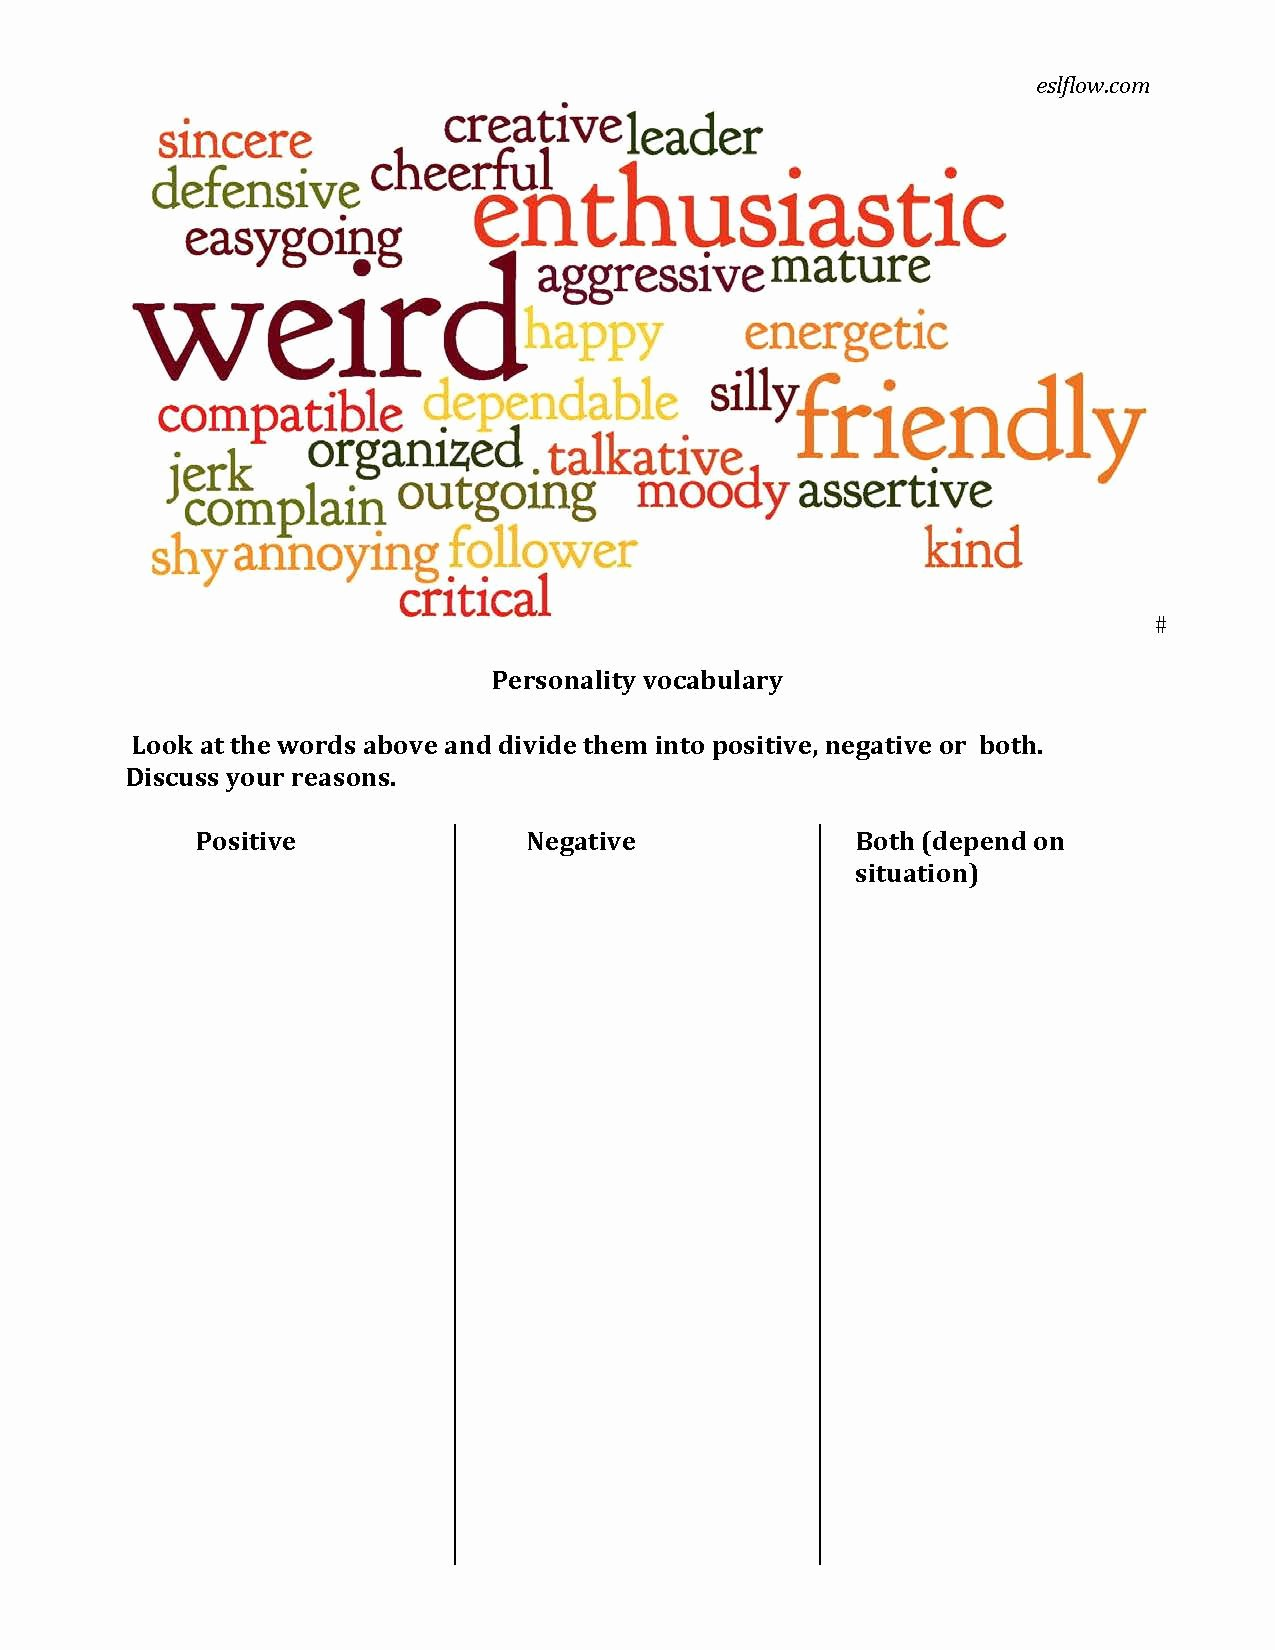 Character Traits Worksheet Pdf Awesome Personality Adjective Vocabulary Worksheet Eslflow